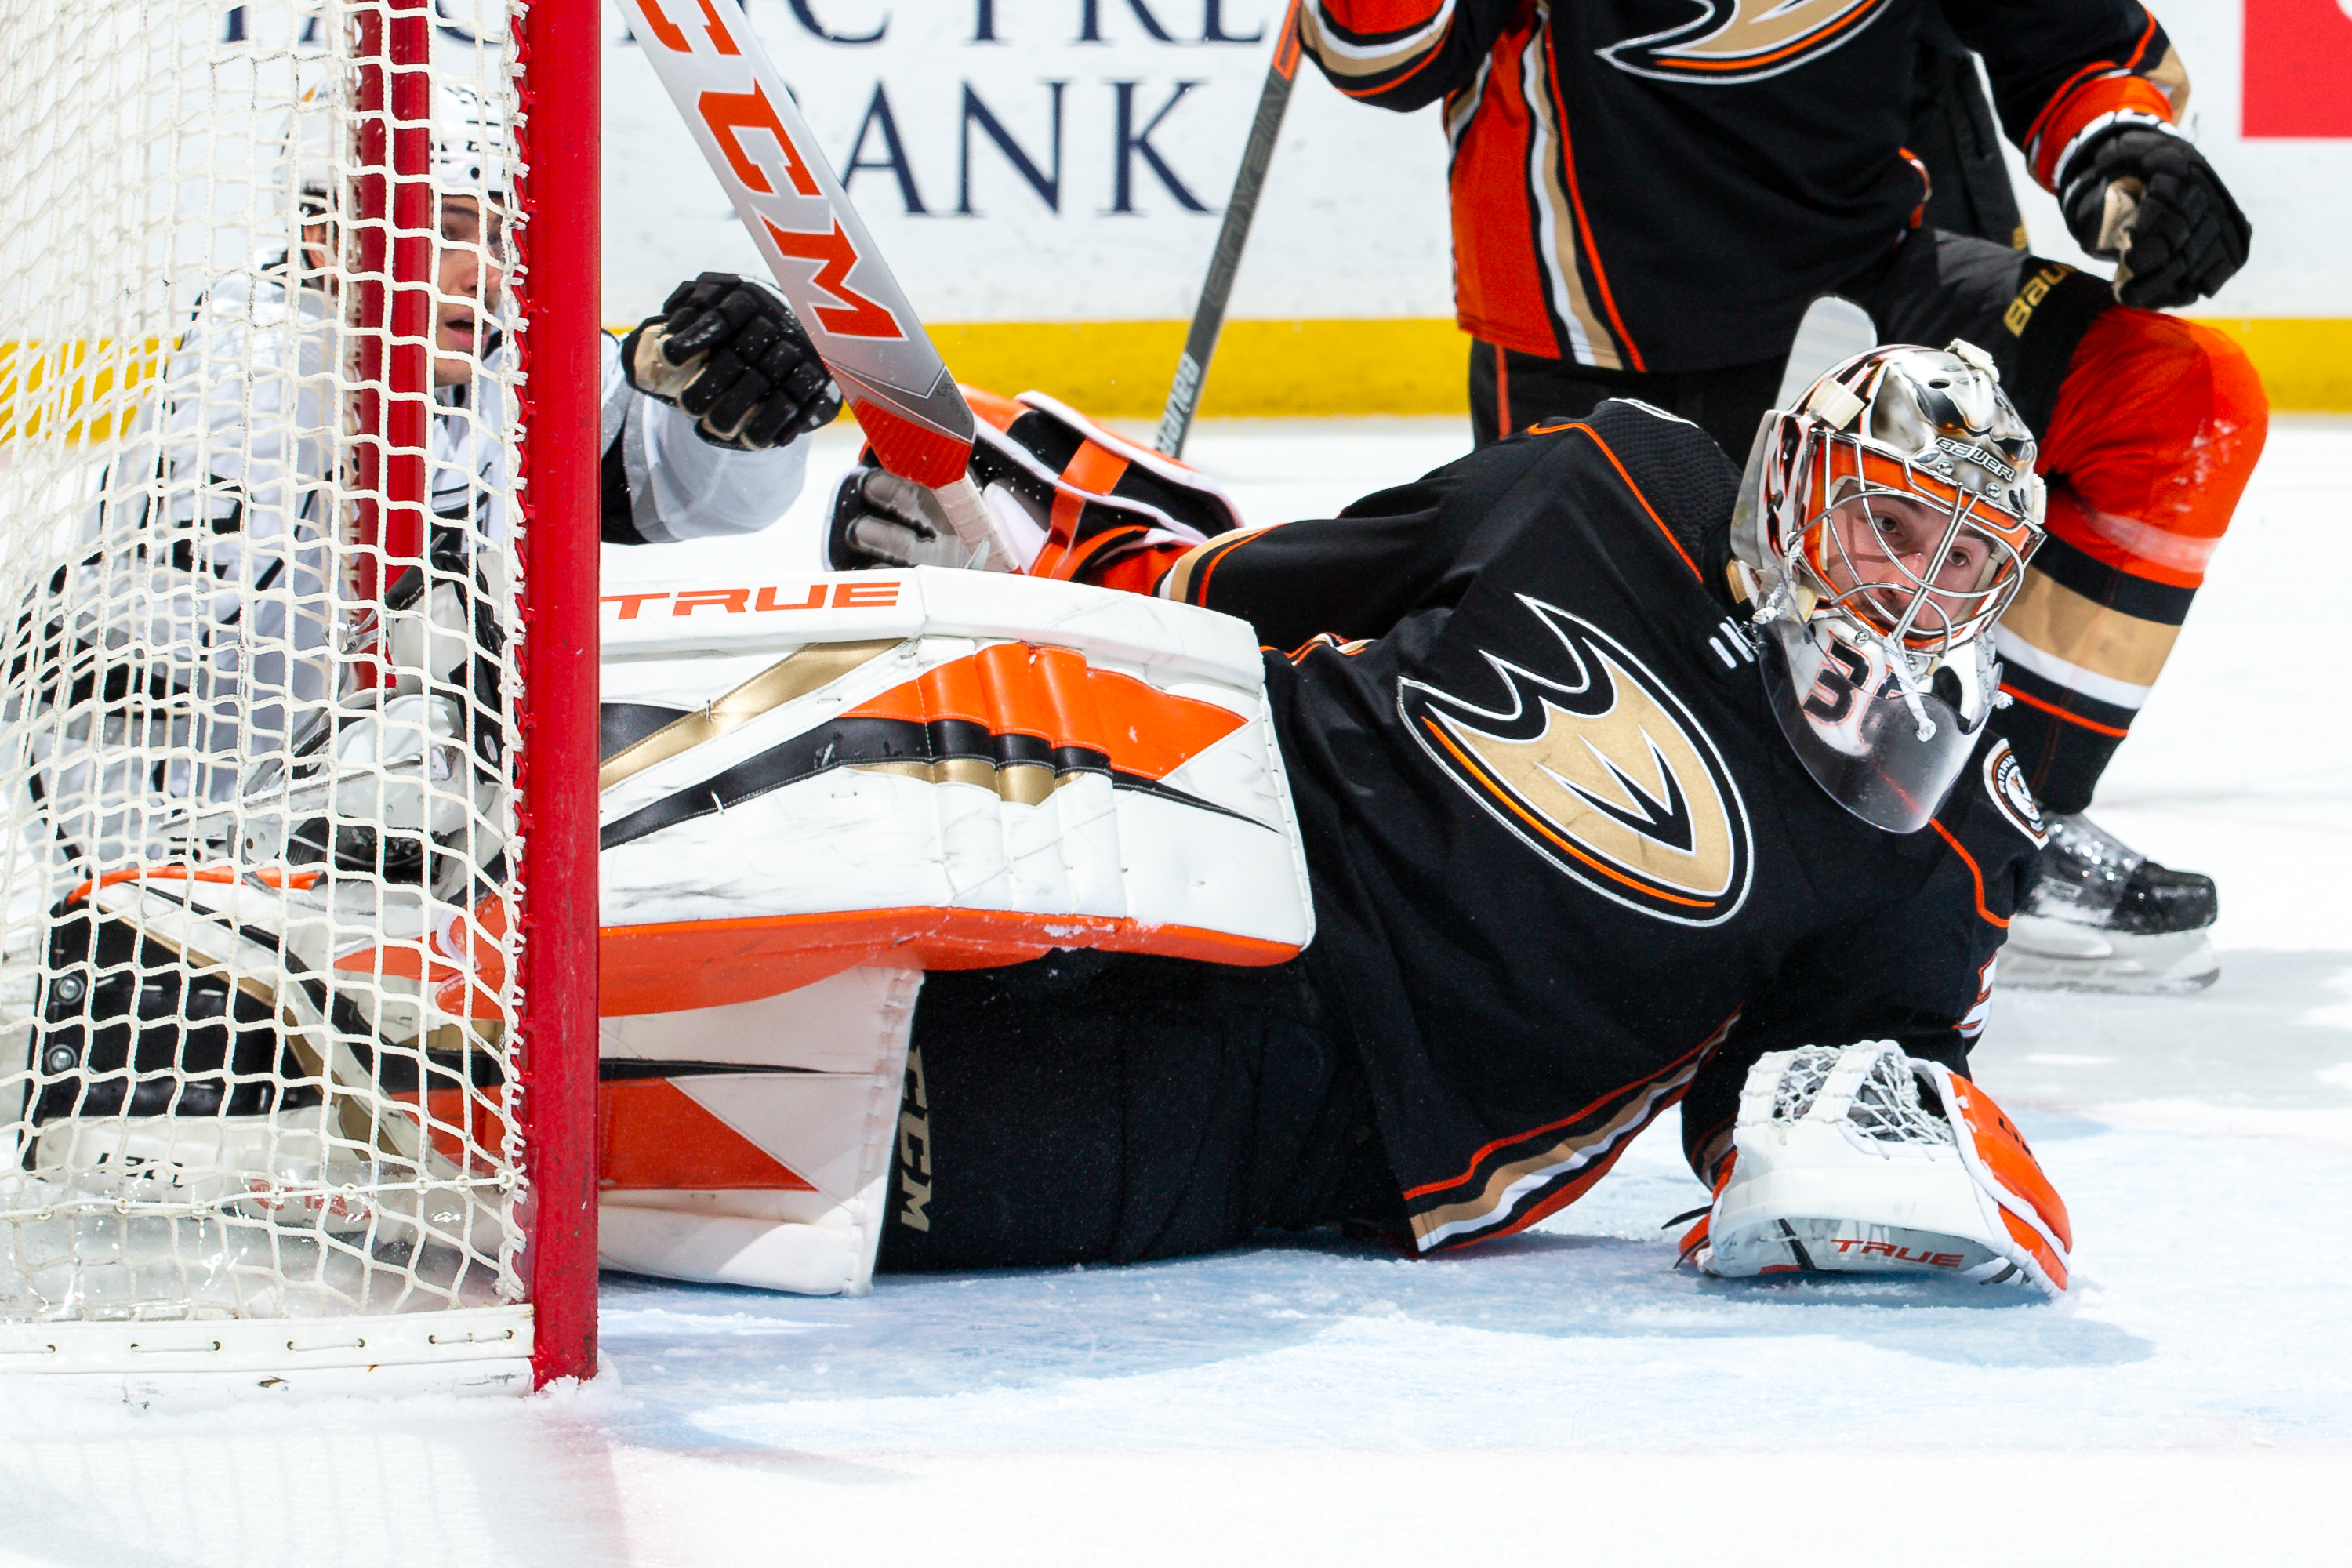 Goaltender John Gibson #36 of the Anaheim Ducks lies on the ice in the crease after players collided with him during the first period of the game against the Los Angeles Kings at Honda Center on March 8, 2021 in Anaheim, California.